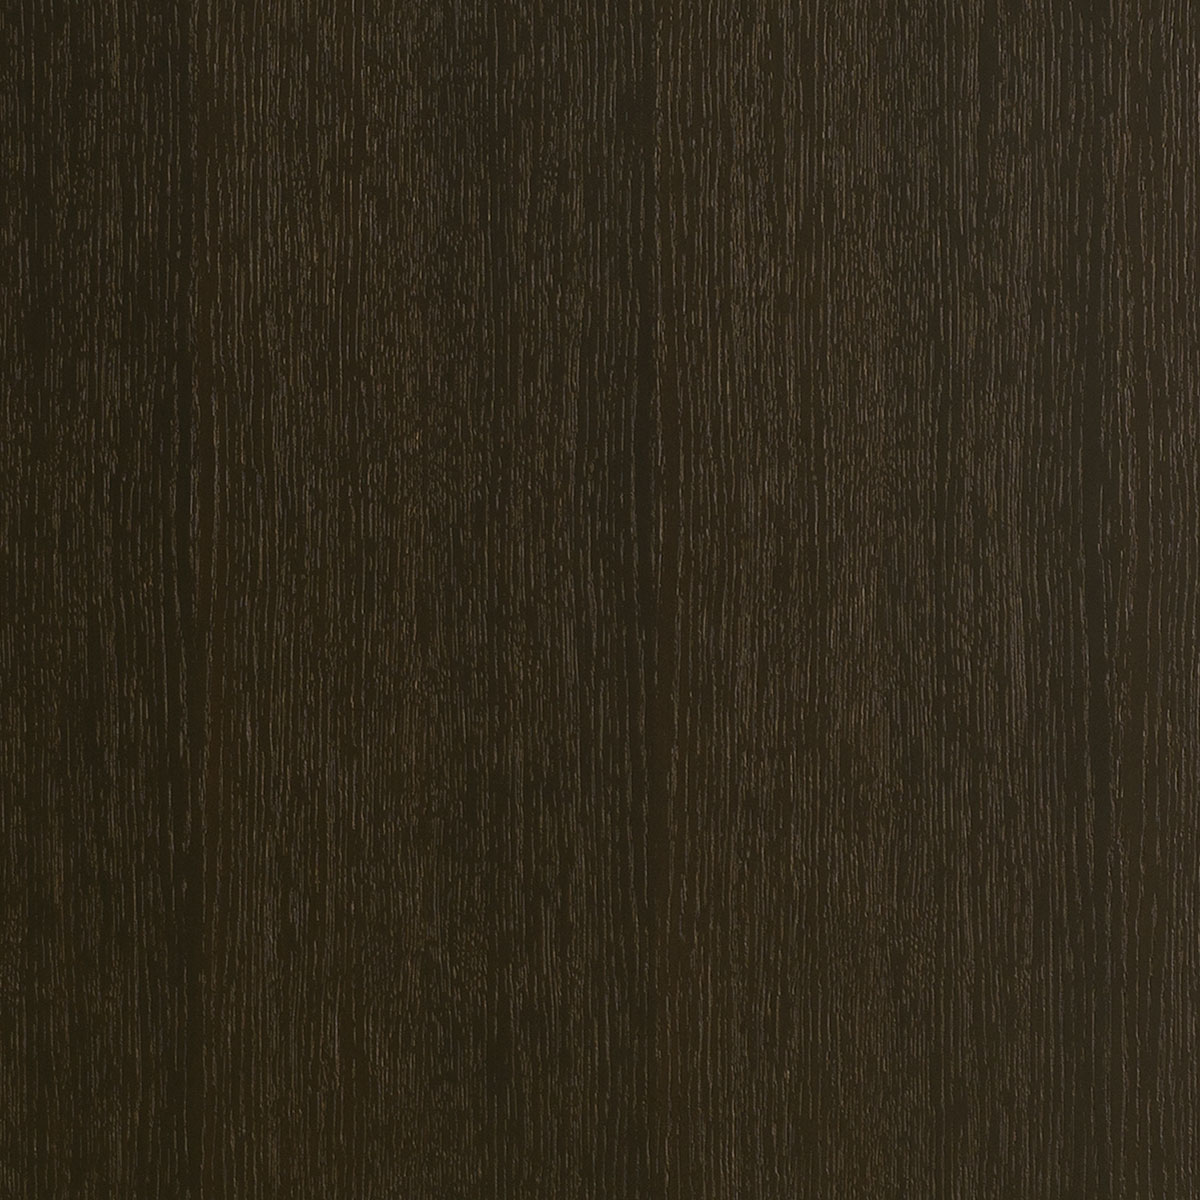 Oak Wood, Coffee Bean Finish